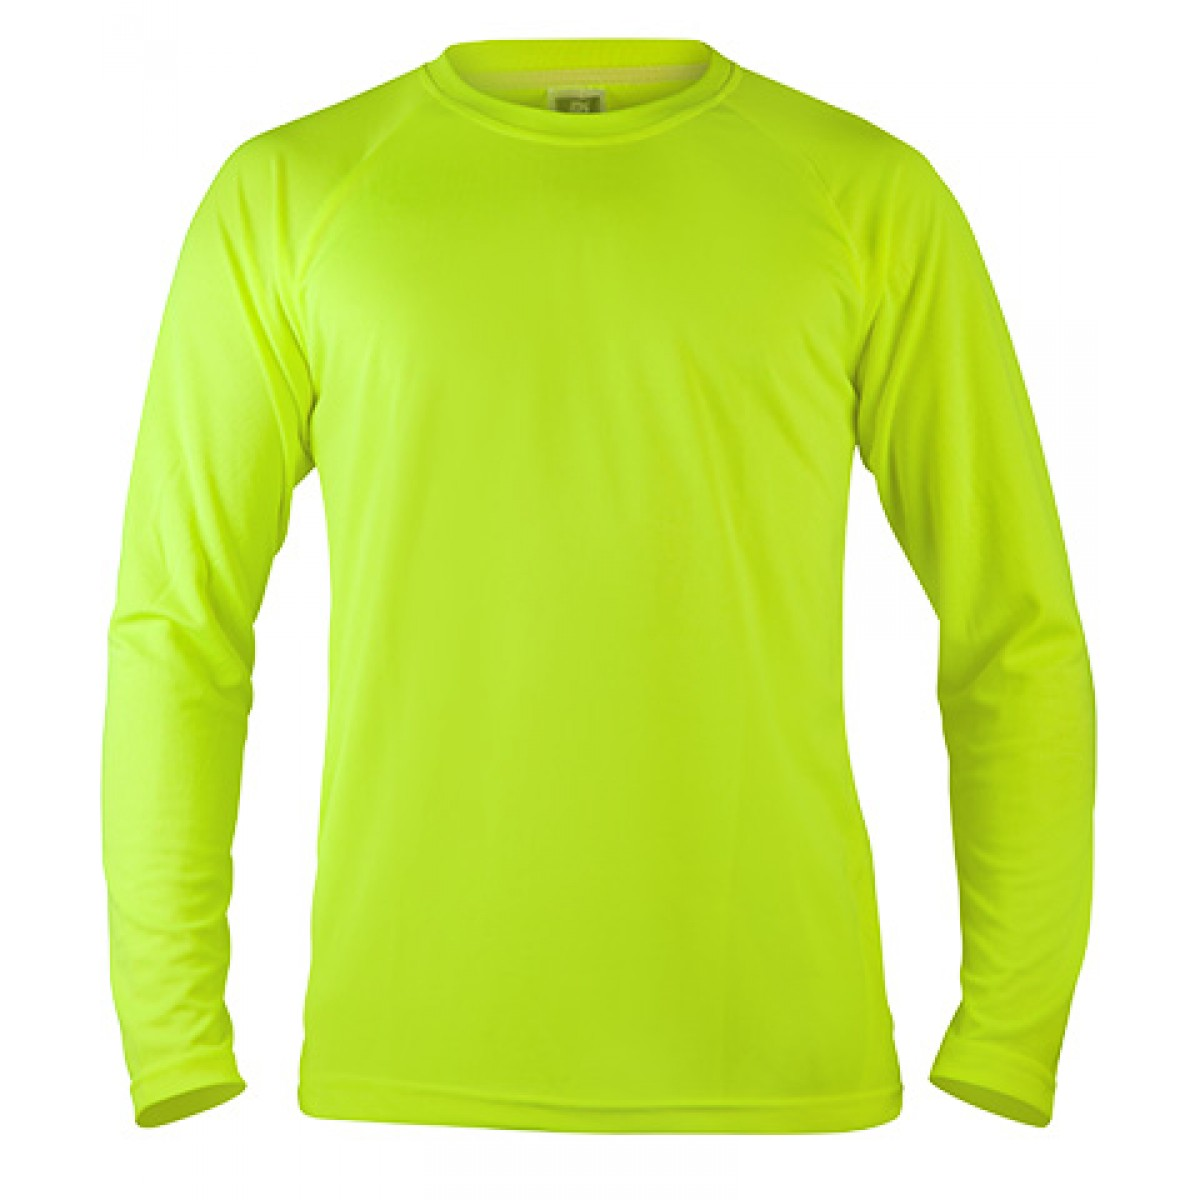 Long Sleeve Mesh Performance T-shirt-Neon Green-M